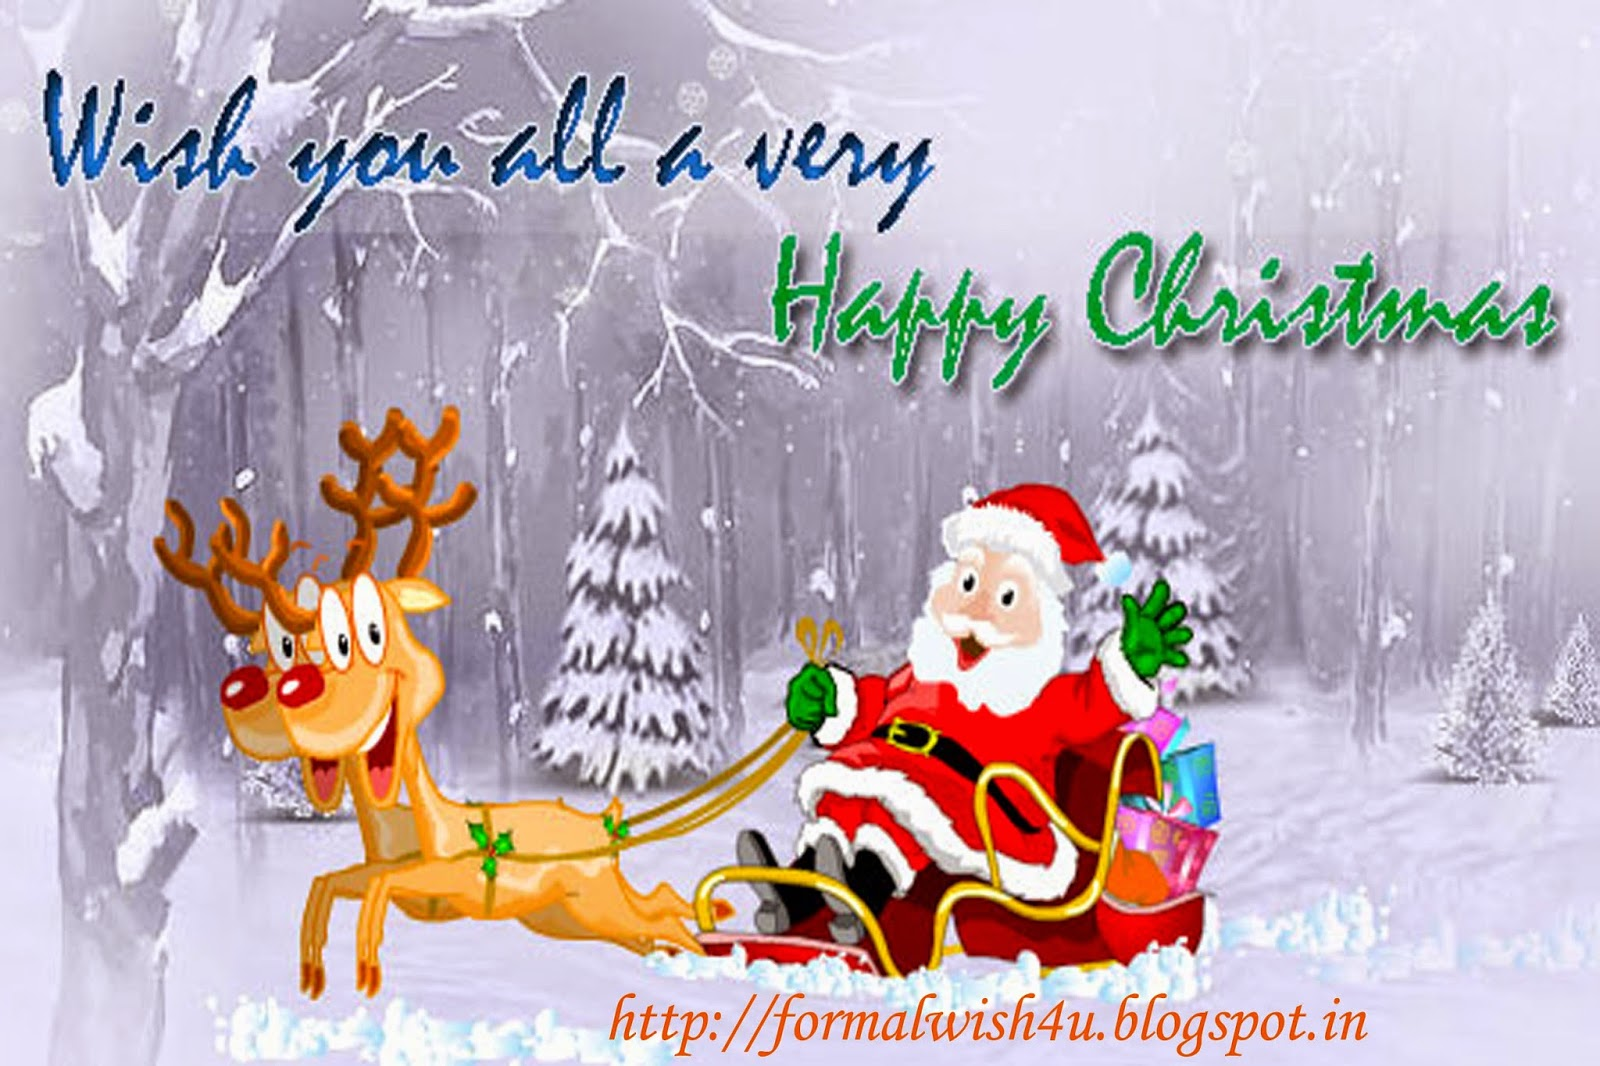 Wish merry christmas and happy new year 2015 wish and greetings kristyandbryce Images